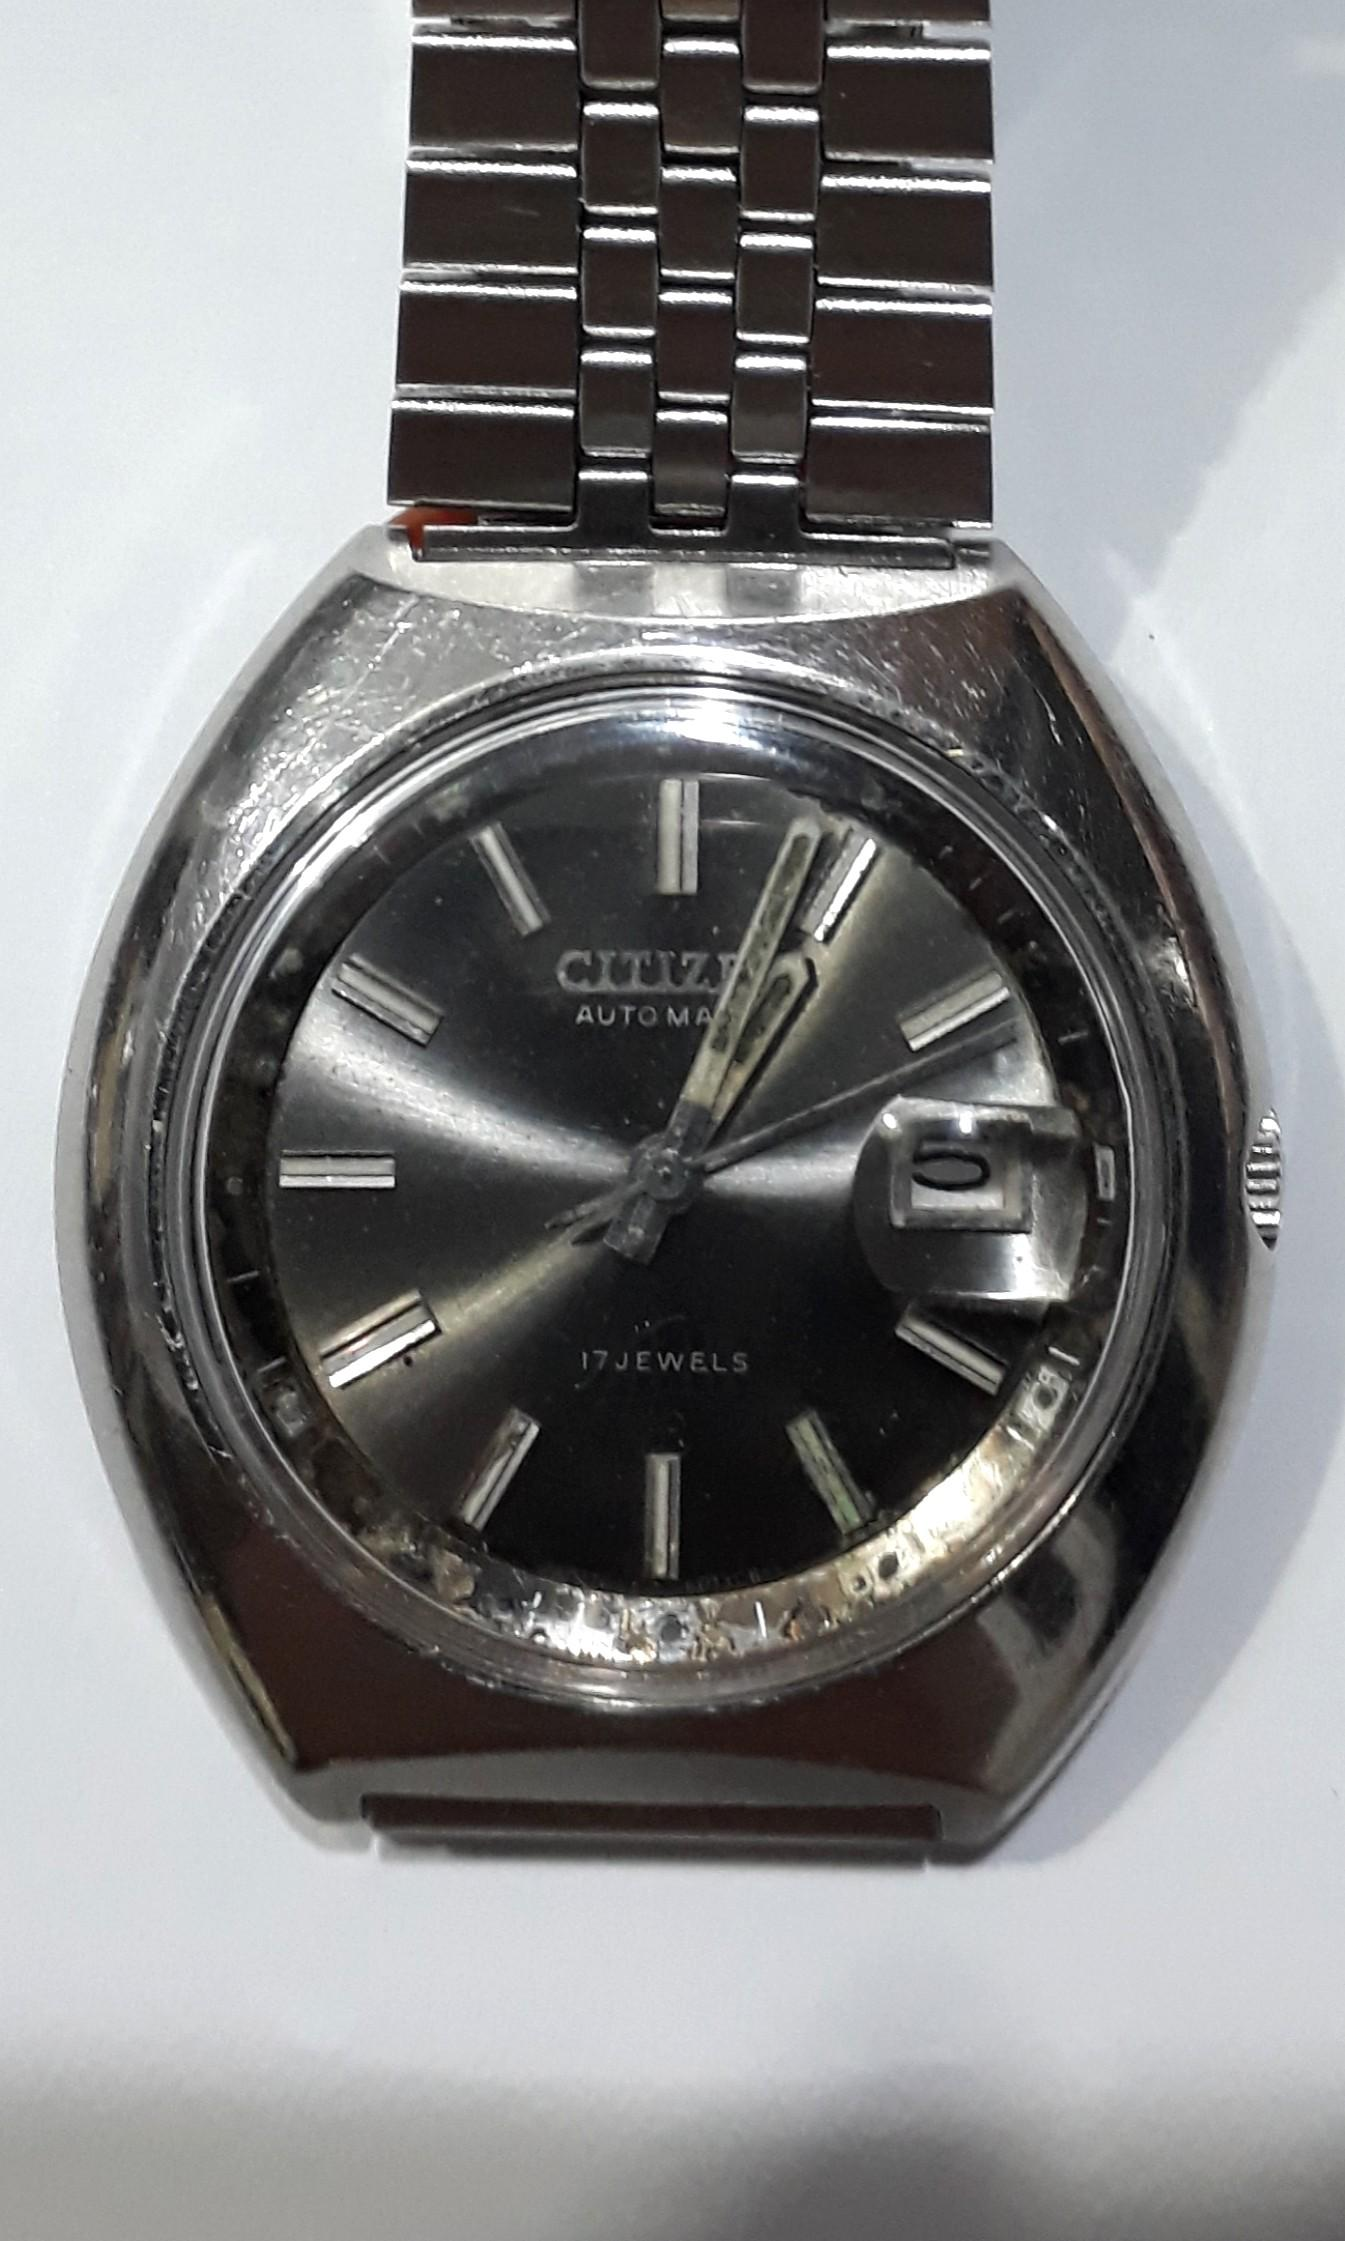 SEIKO 5  Automatic watch  bezel 37mm  21 jewels Date & Day display calendar Working condition  8.5/10 new Sold as is  Sold as seen Check before payment